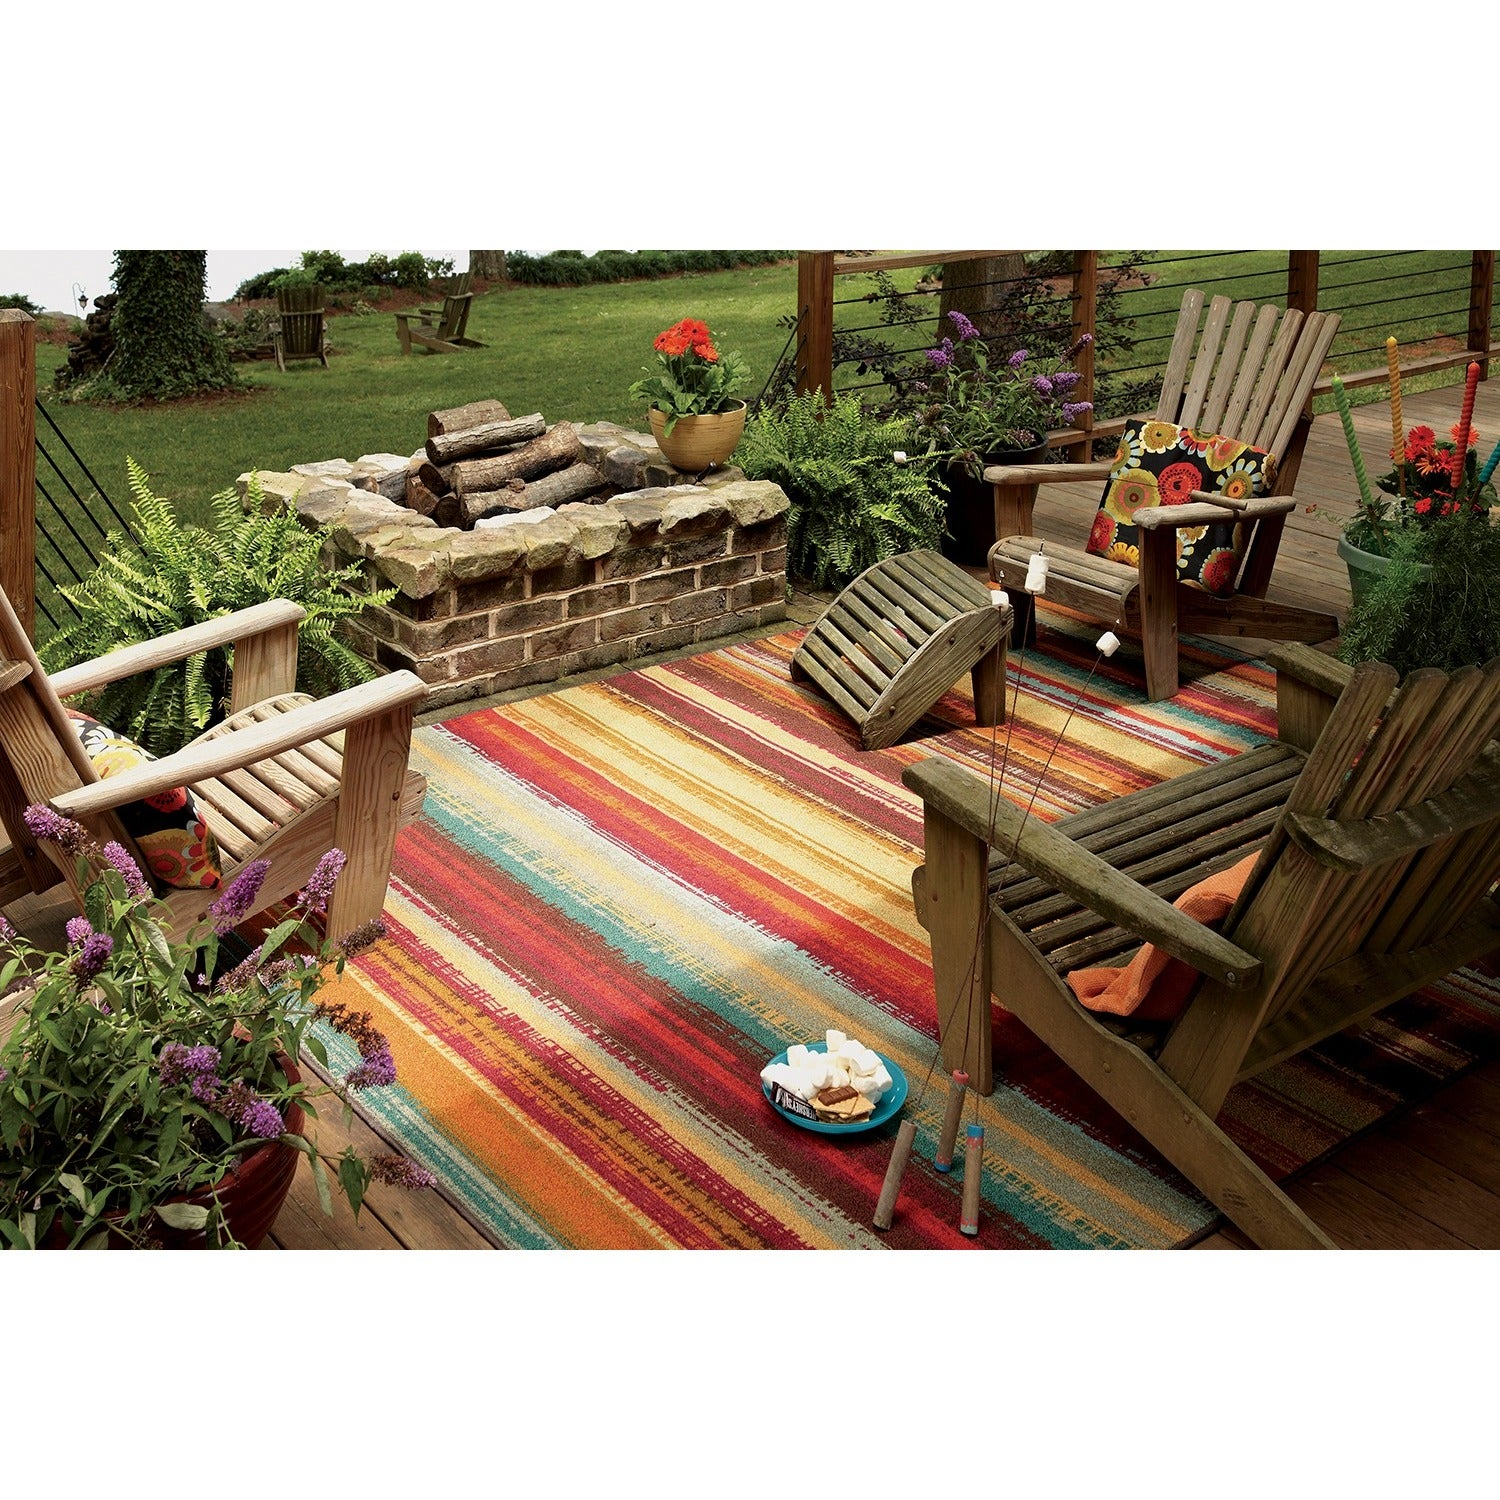 mohawk home printed outdoor multicolor rug (5' x 8') - free